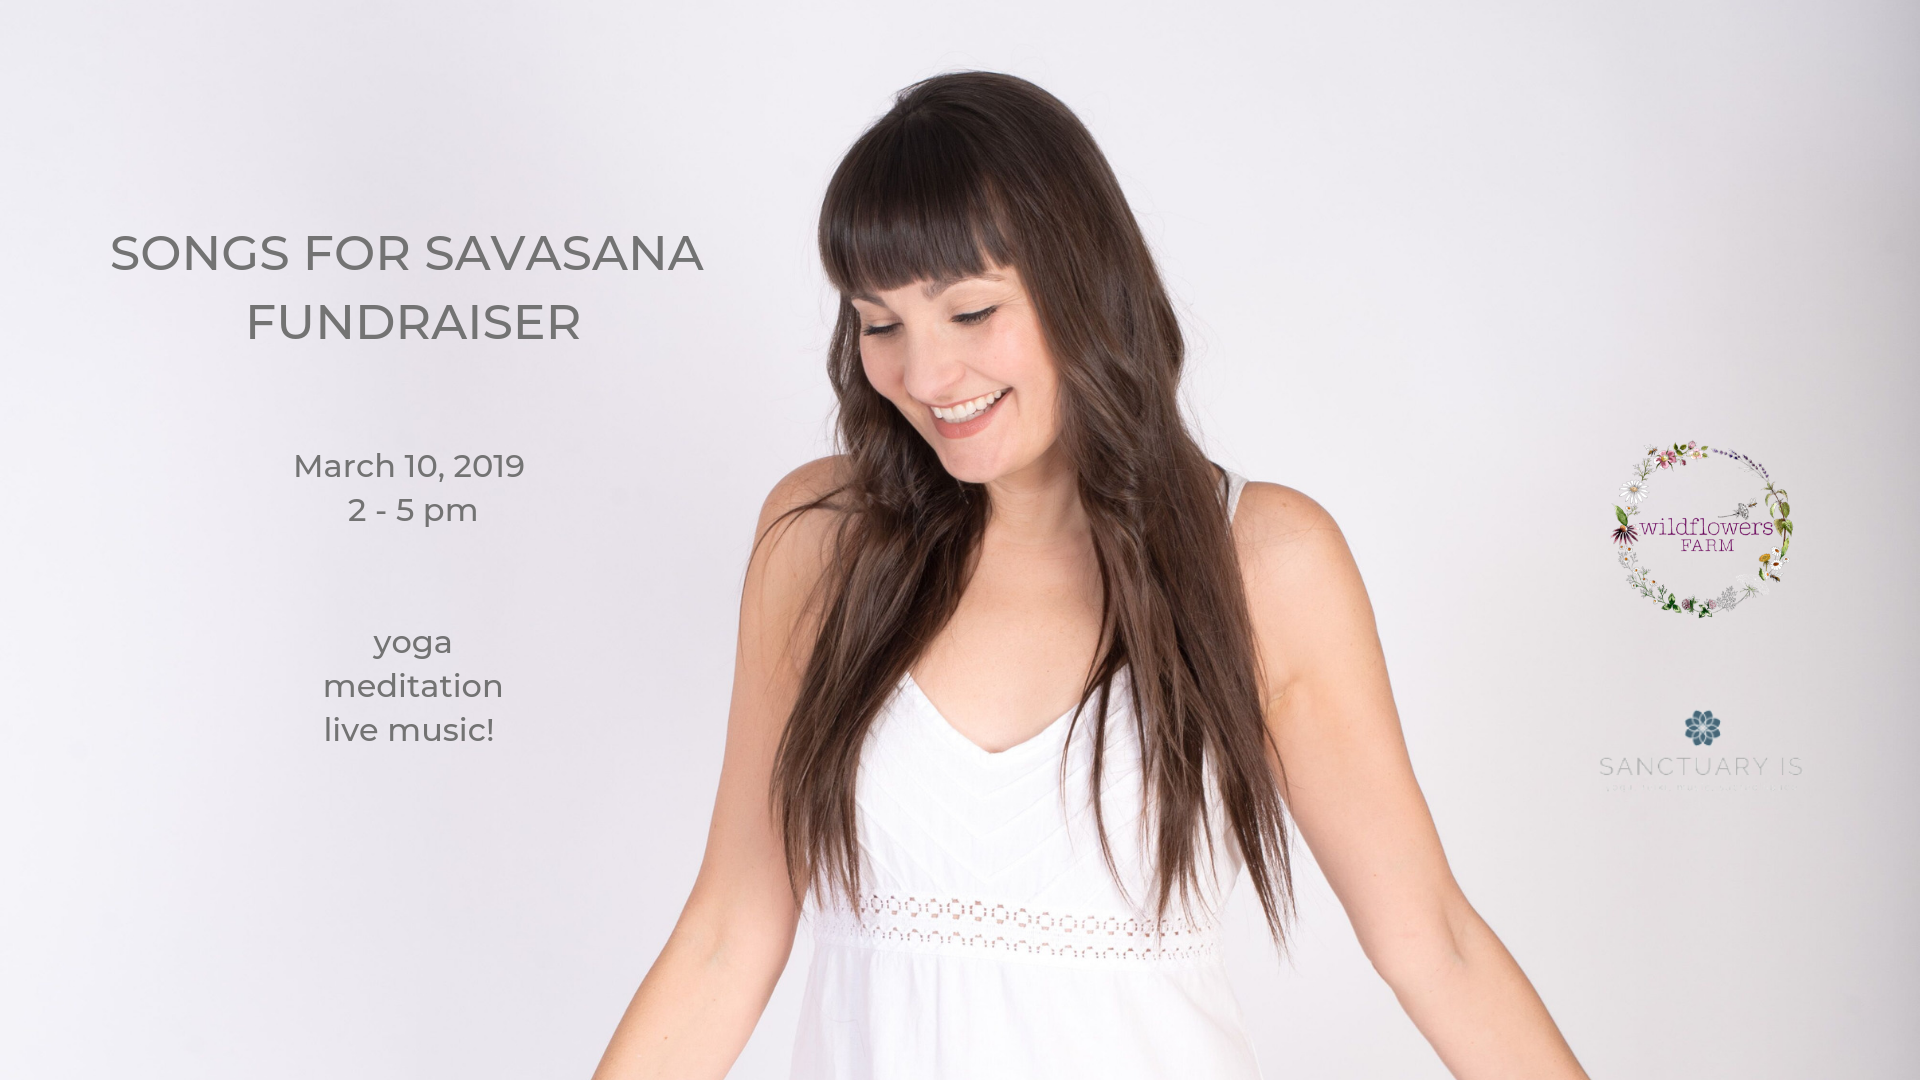 Songs for Savasana Fundraiser.png